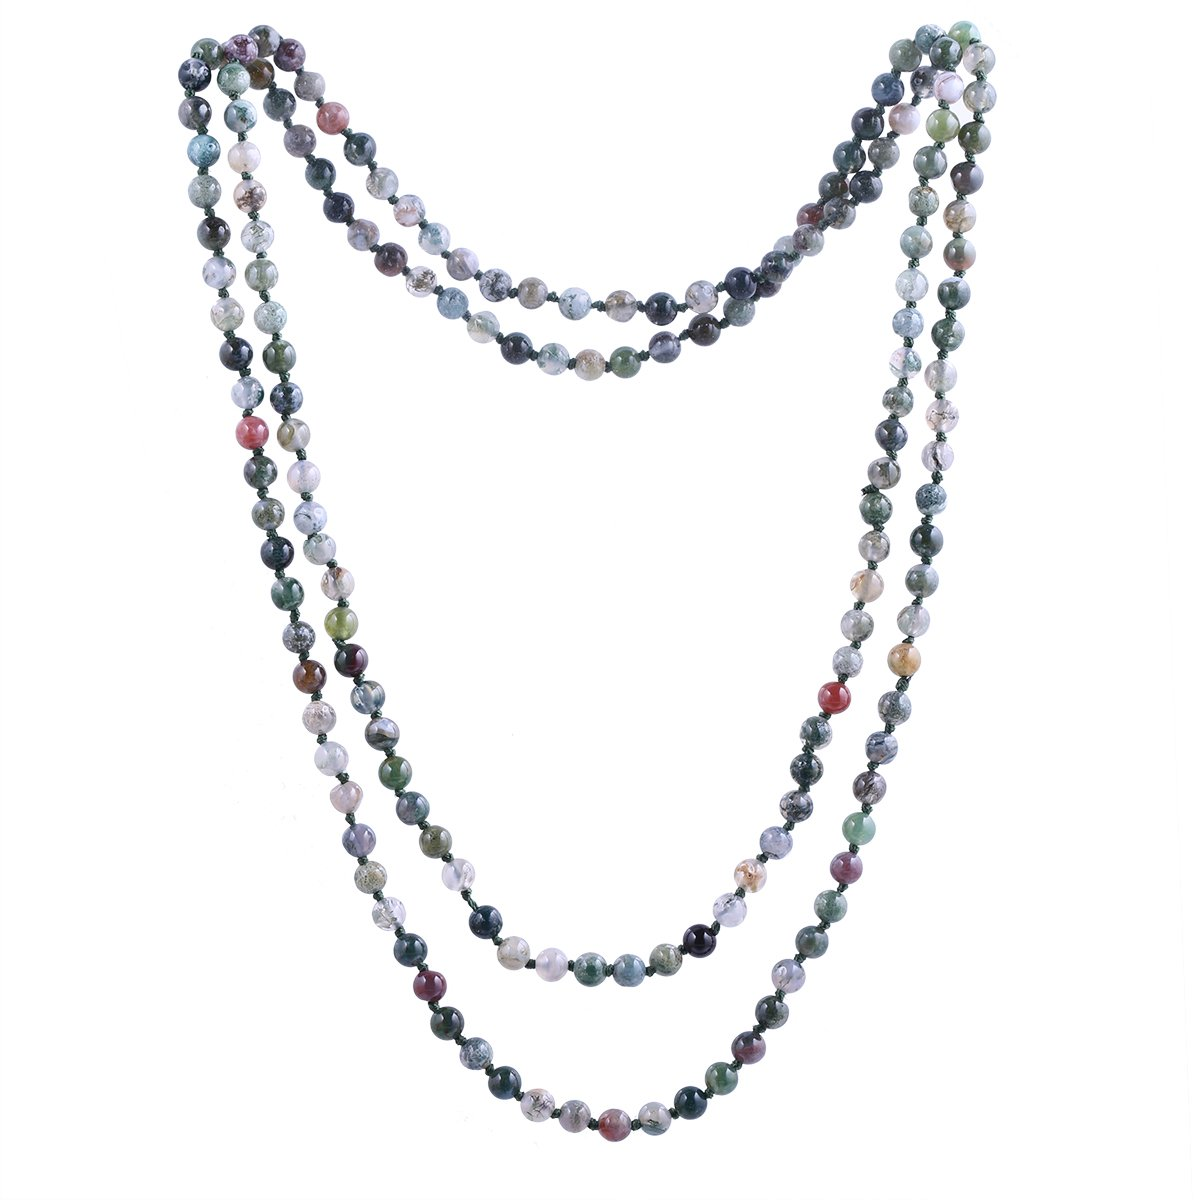 Qitian 6mm India Agate Beads Necklace Women Handmade Long Necklace Stone Beads Necklaces 47''